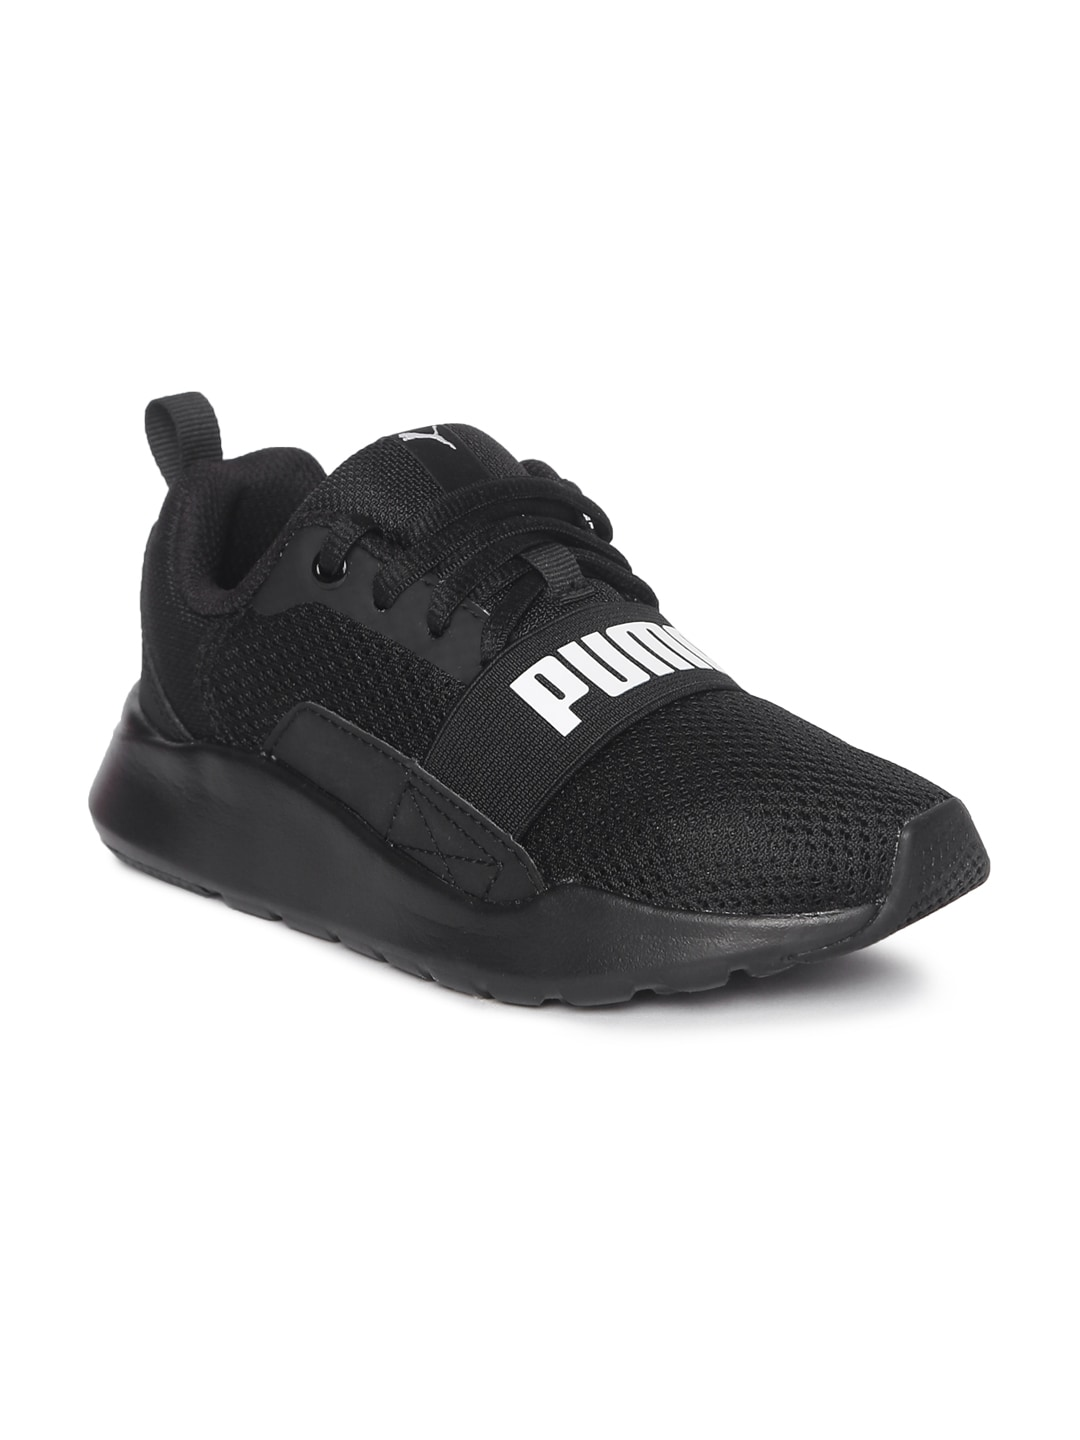 7f5cb28d6146 Puma Gloves Casual Shoes - Buy Puma Gloves Casual Shoes online in India